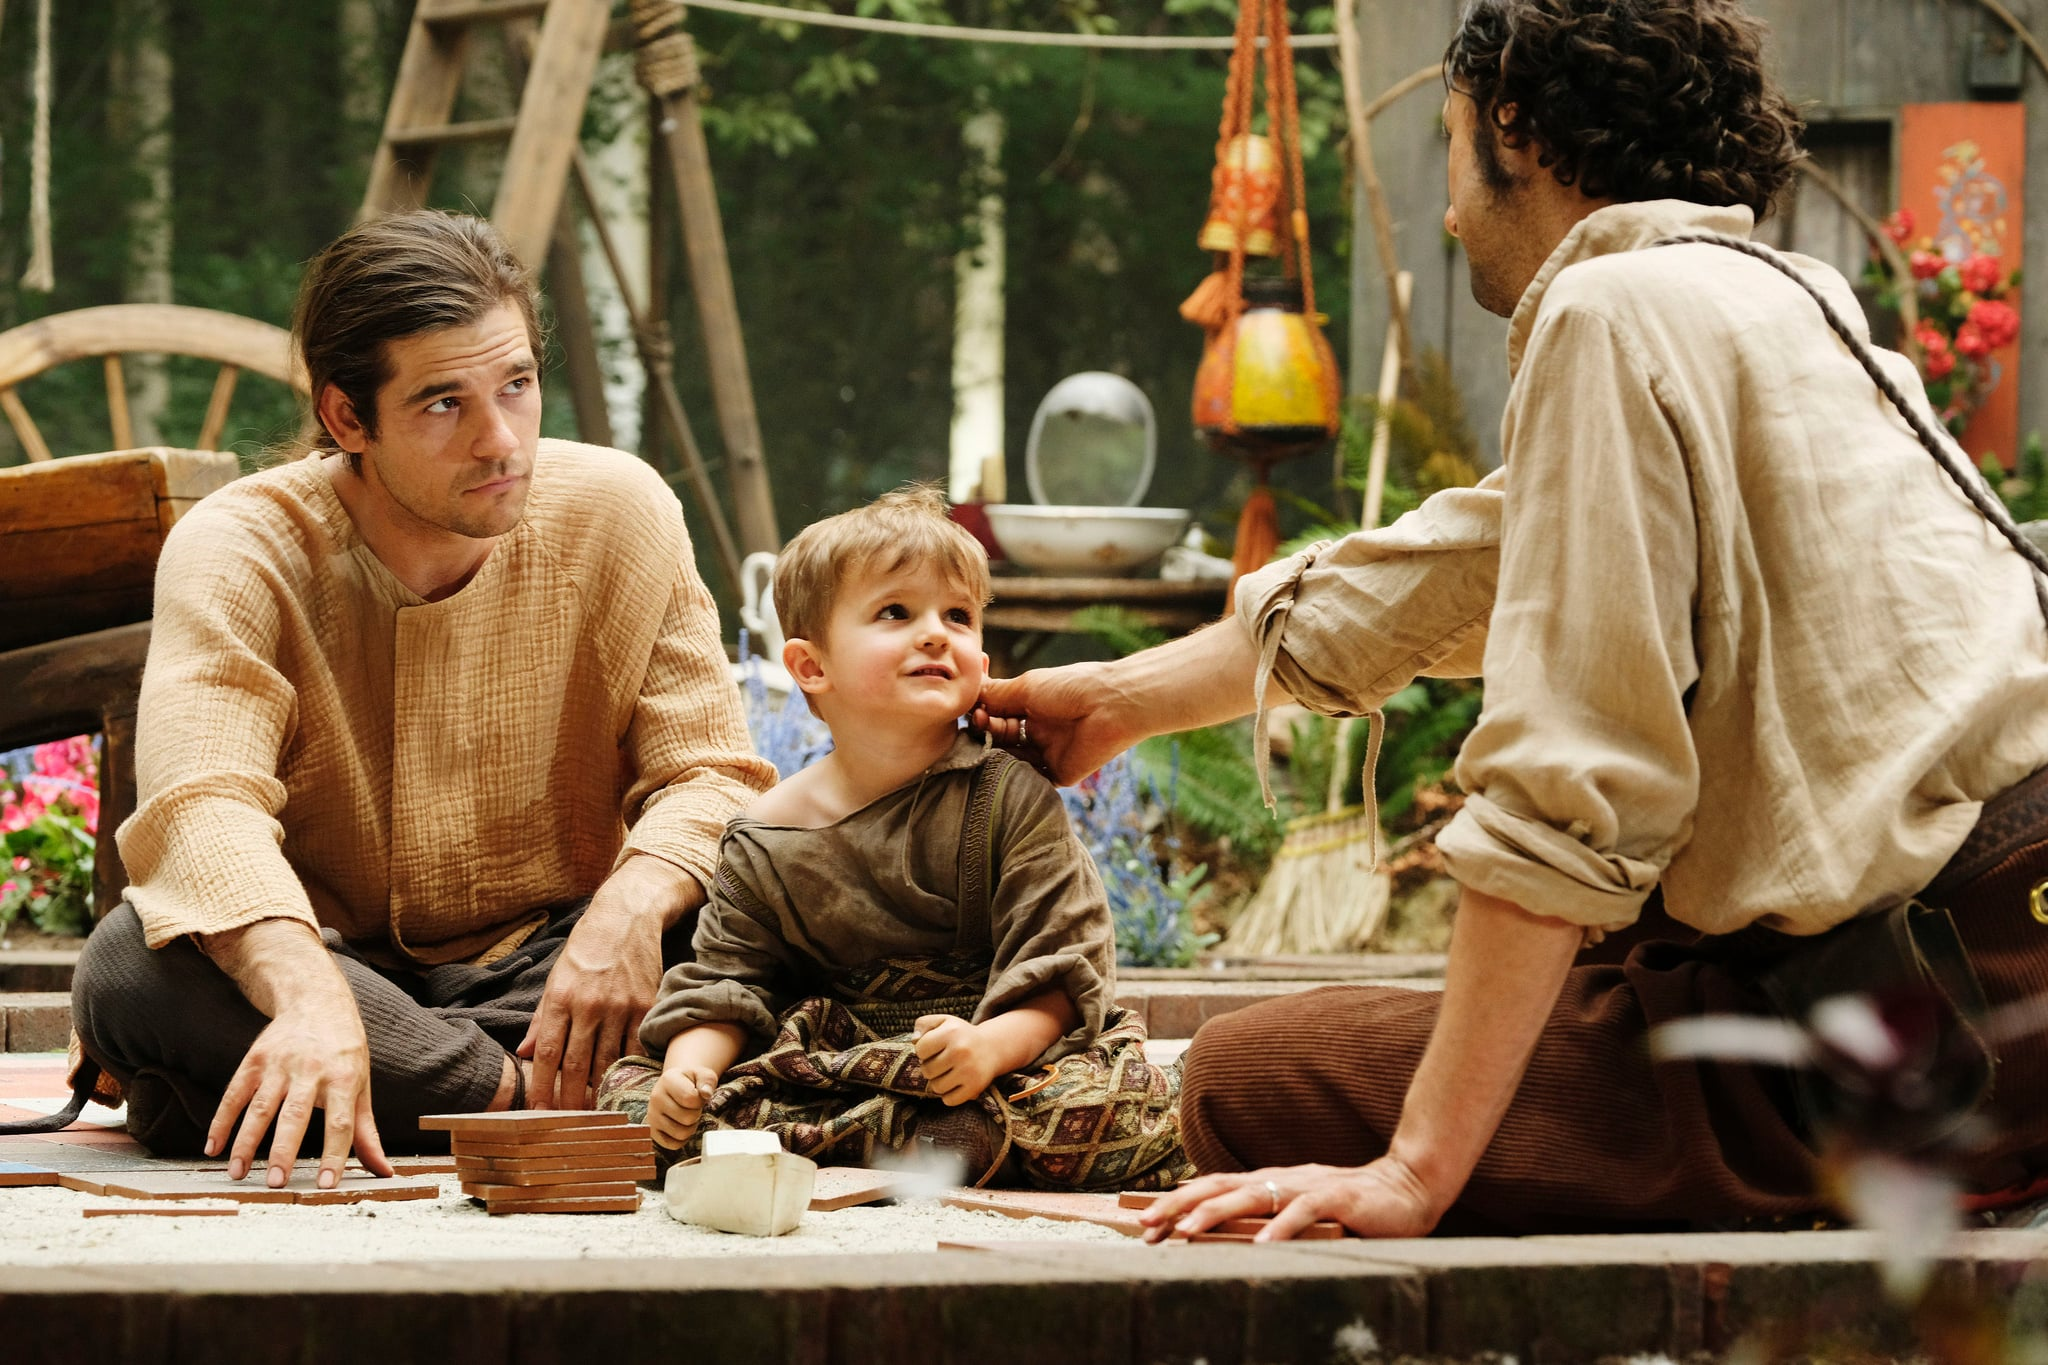 THE MAGICIANS, from left: Jason Ralph, Sebastian Billingsley-Rodriguez, Hale Appleman (back to camera), 'A Life in the Day', (Season 3, ep. 305, aired Feb. 7, 2018). photo: Eric Milner / Syfy / Courtesy: Everett Collection